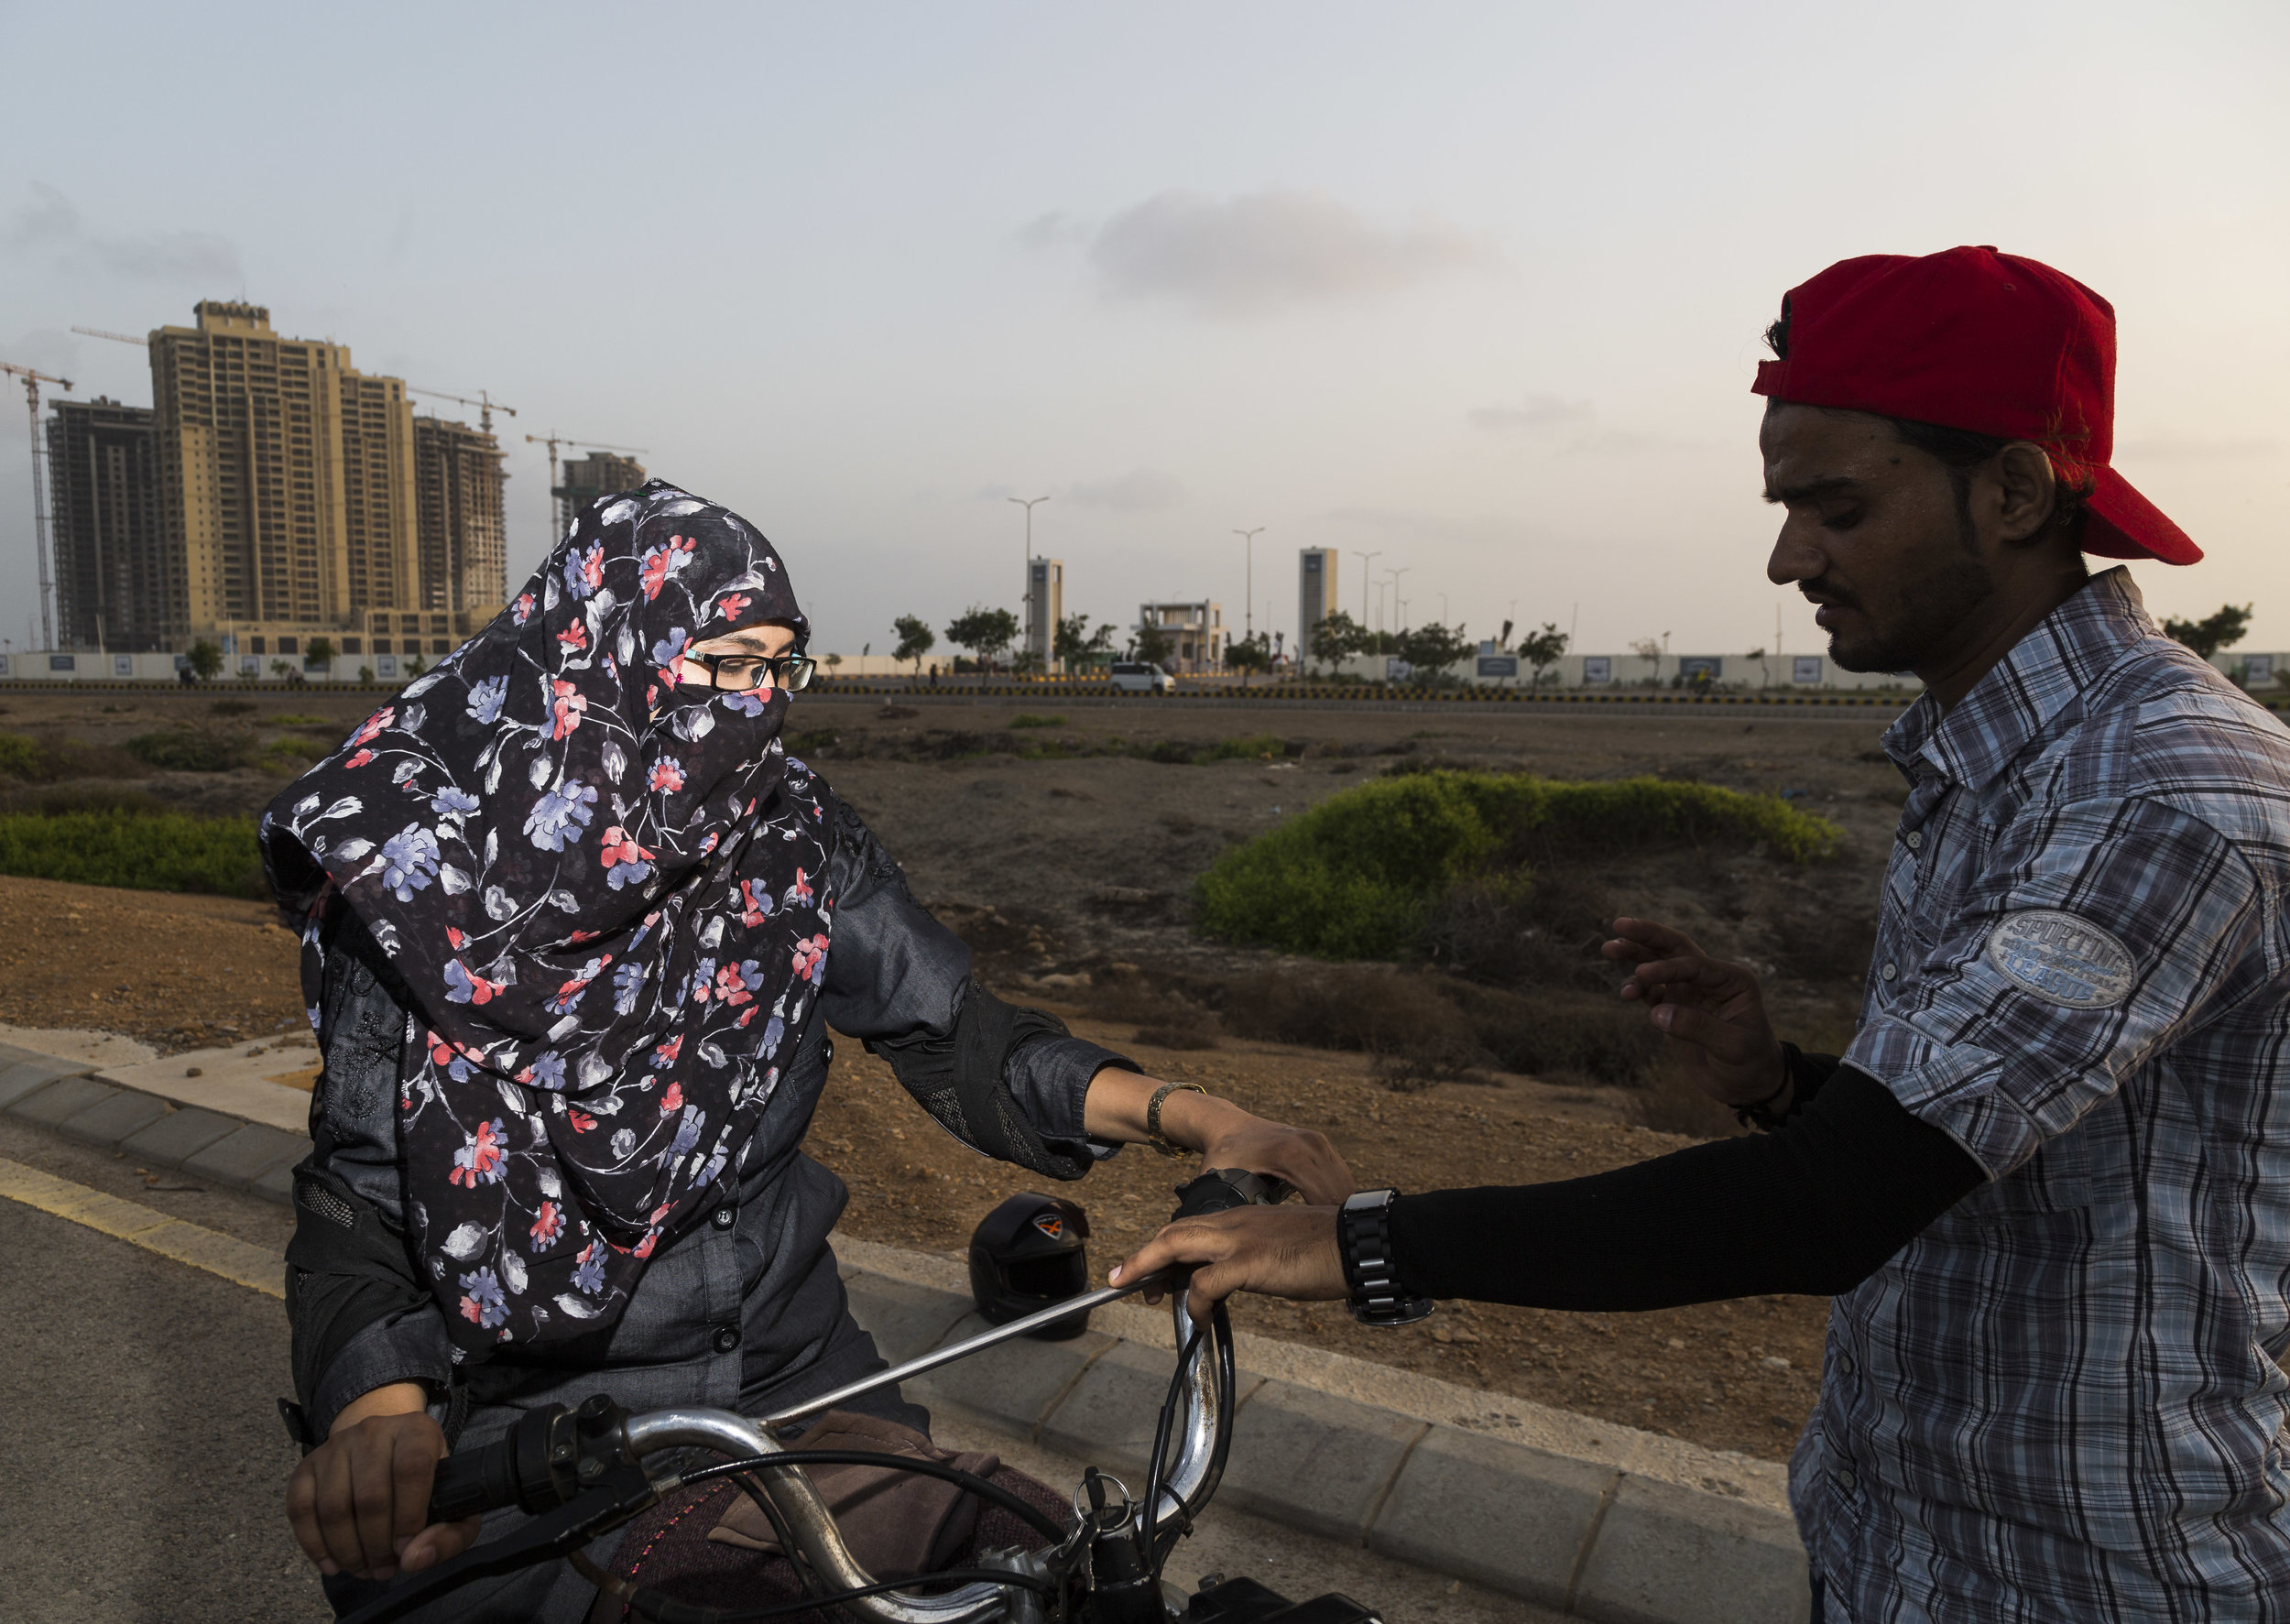 Members of the Pink Riders learn to ride motorcycles in Karachi, Pakistan on June 23, 2019.